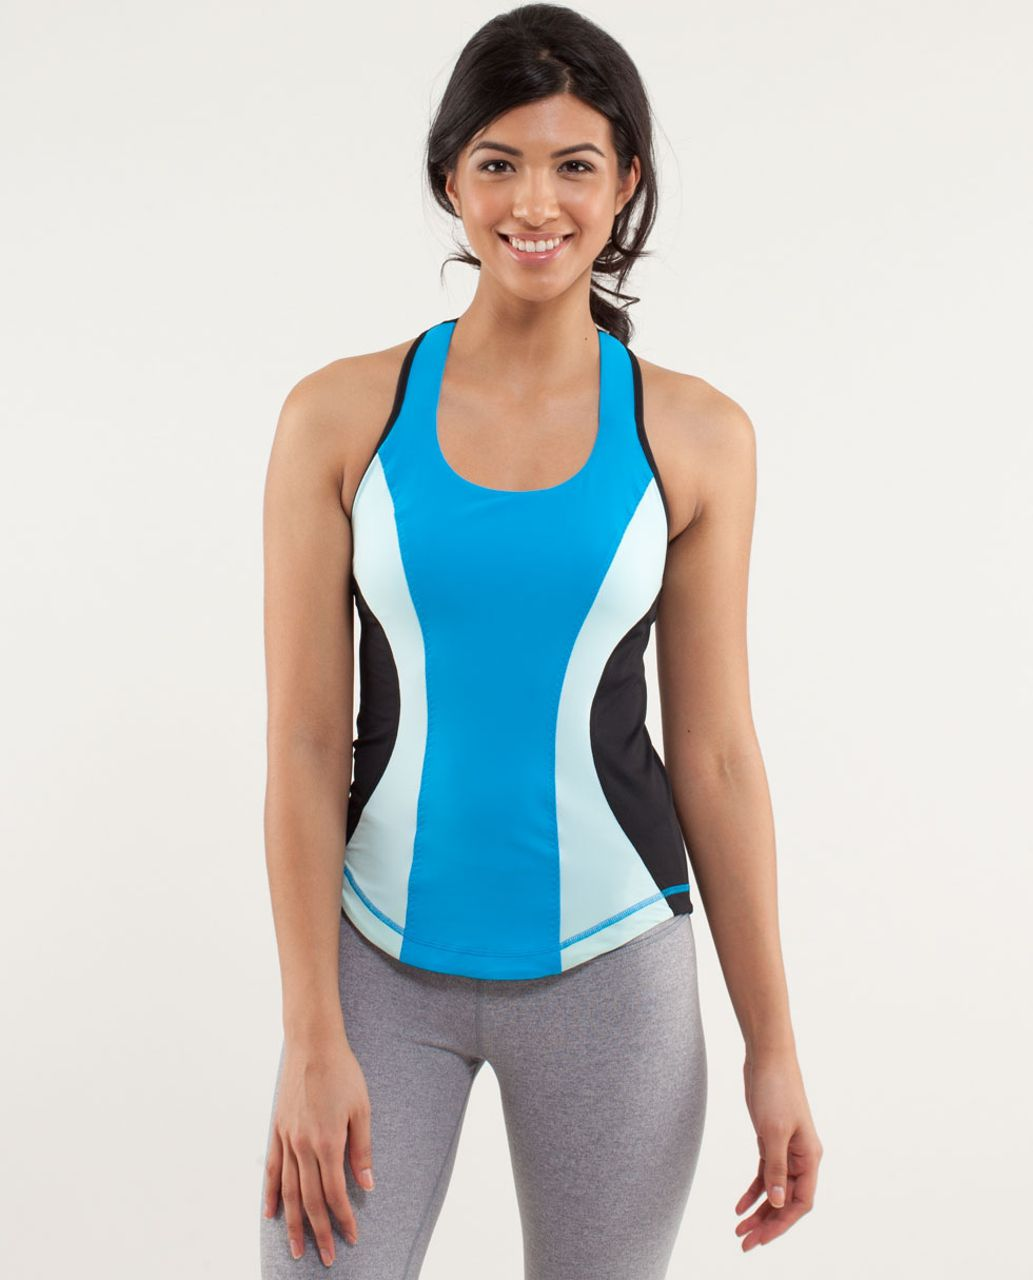 Lululemon Cardio Kick Tank - Beach Blanket Blue / Aquamarine / Black